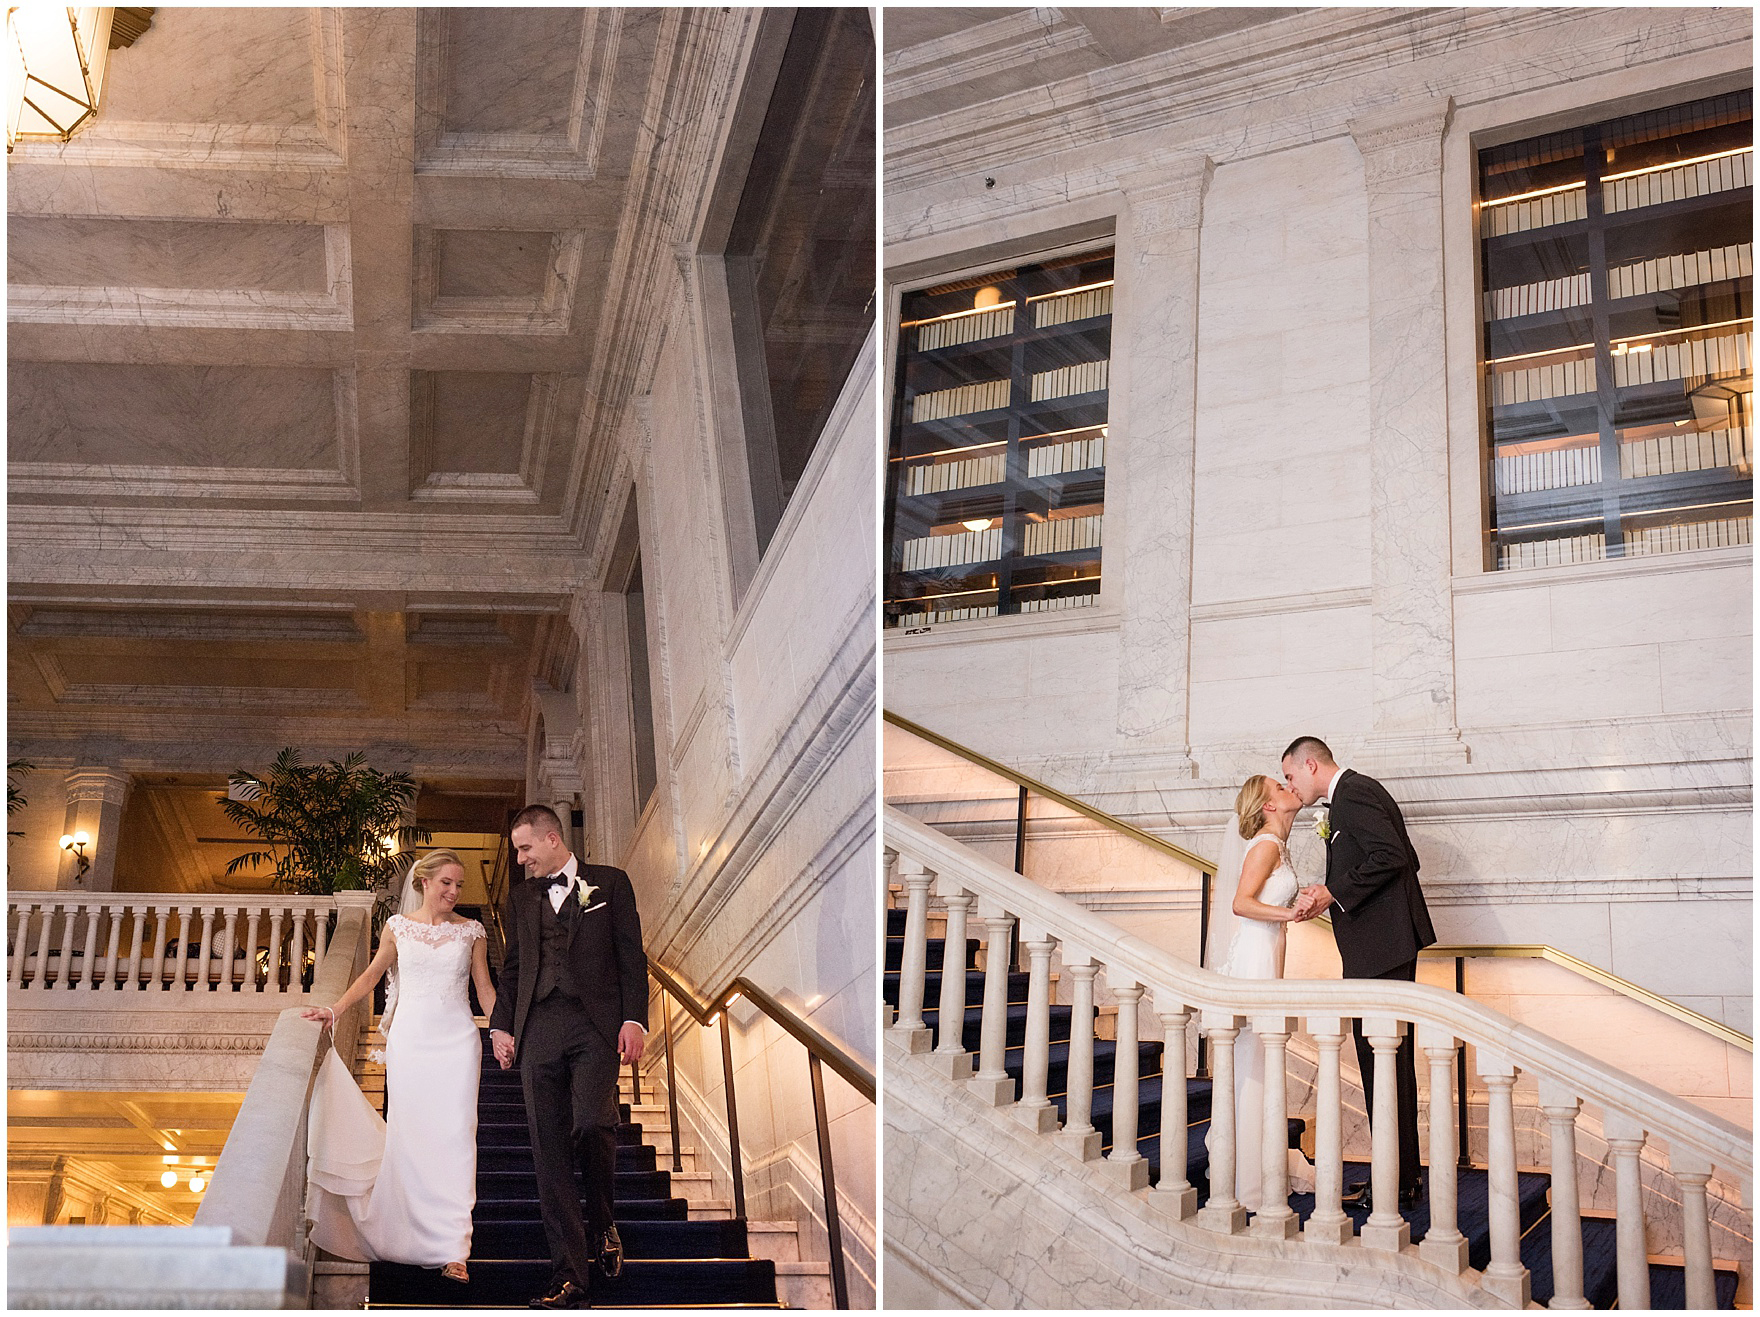 The bride and groom pose for wedding portraits at the Gray Hotel Chicago before a Newberry Library Chicago wedding.